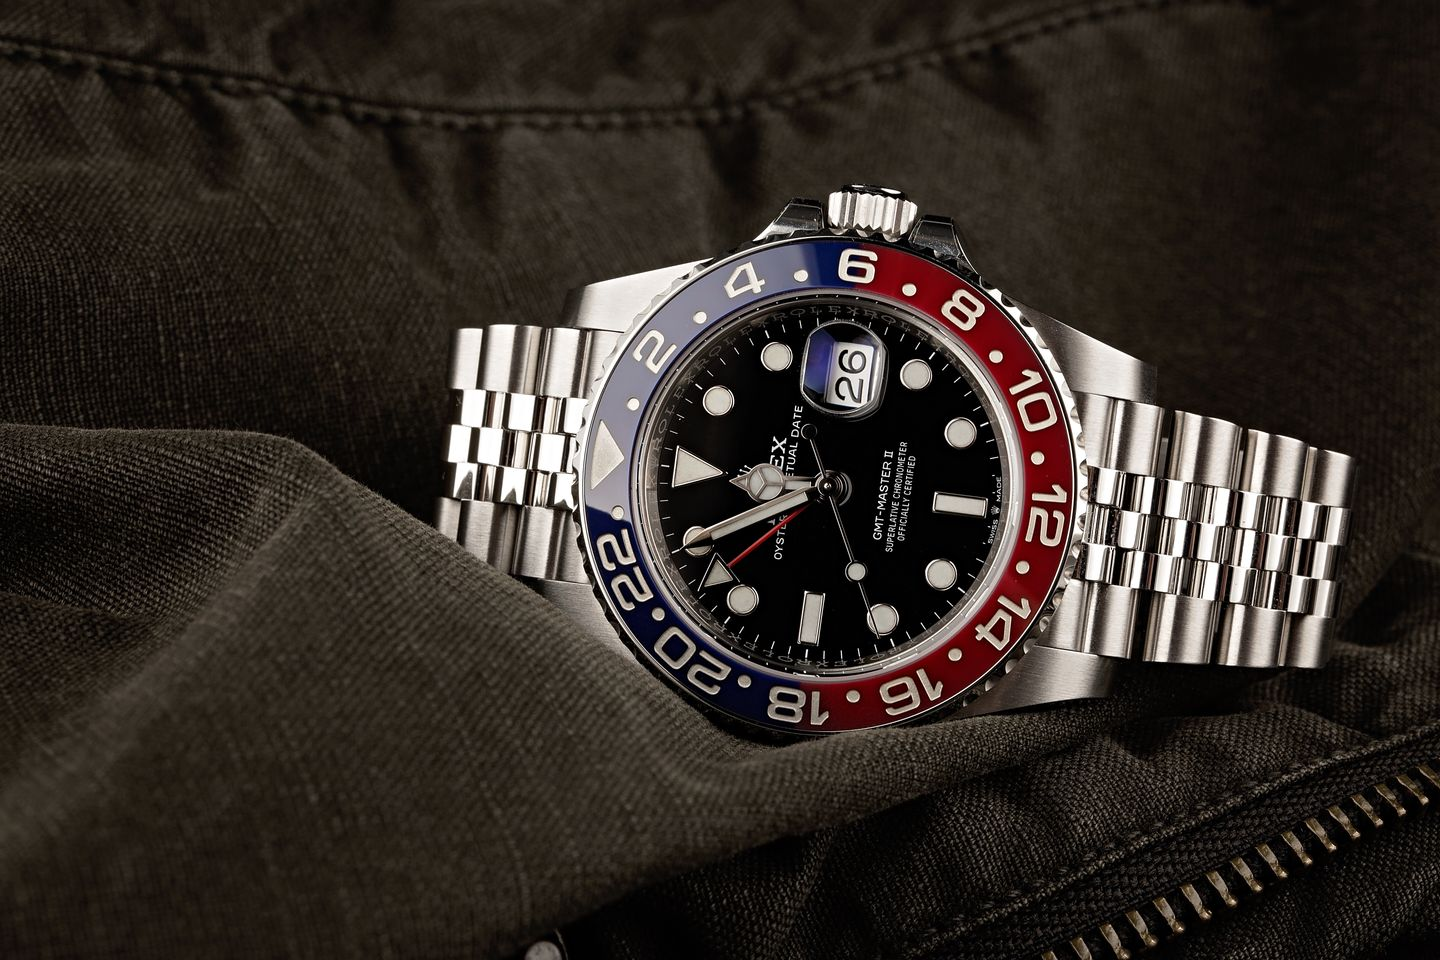 Rolex vs. Tudor: GMT Watch Comparison Pepsi 126710 BLRO Cerachrom ceramic